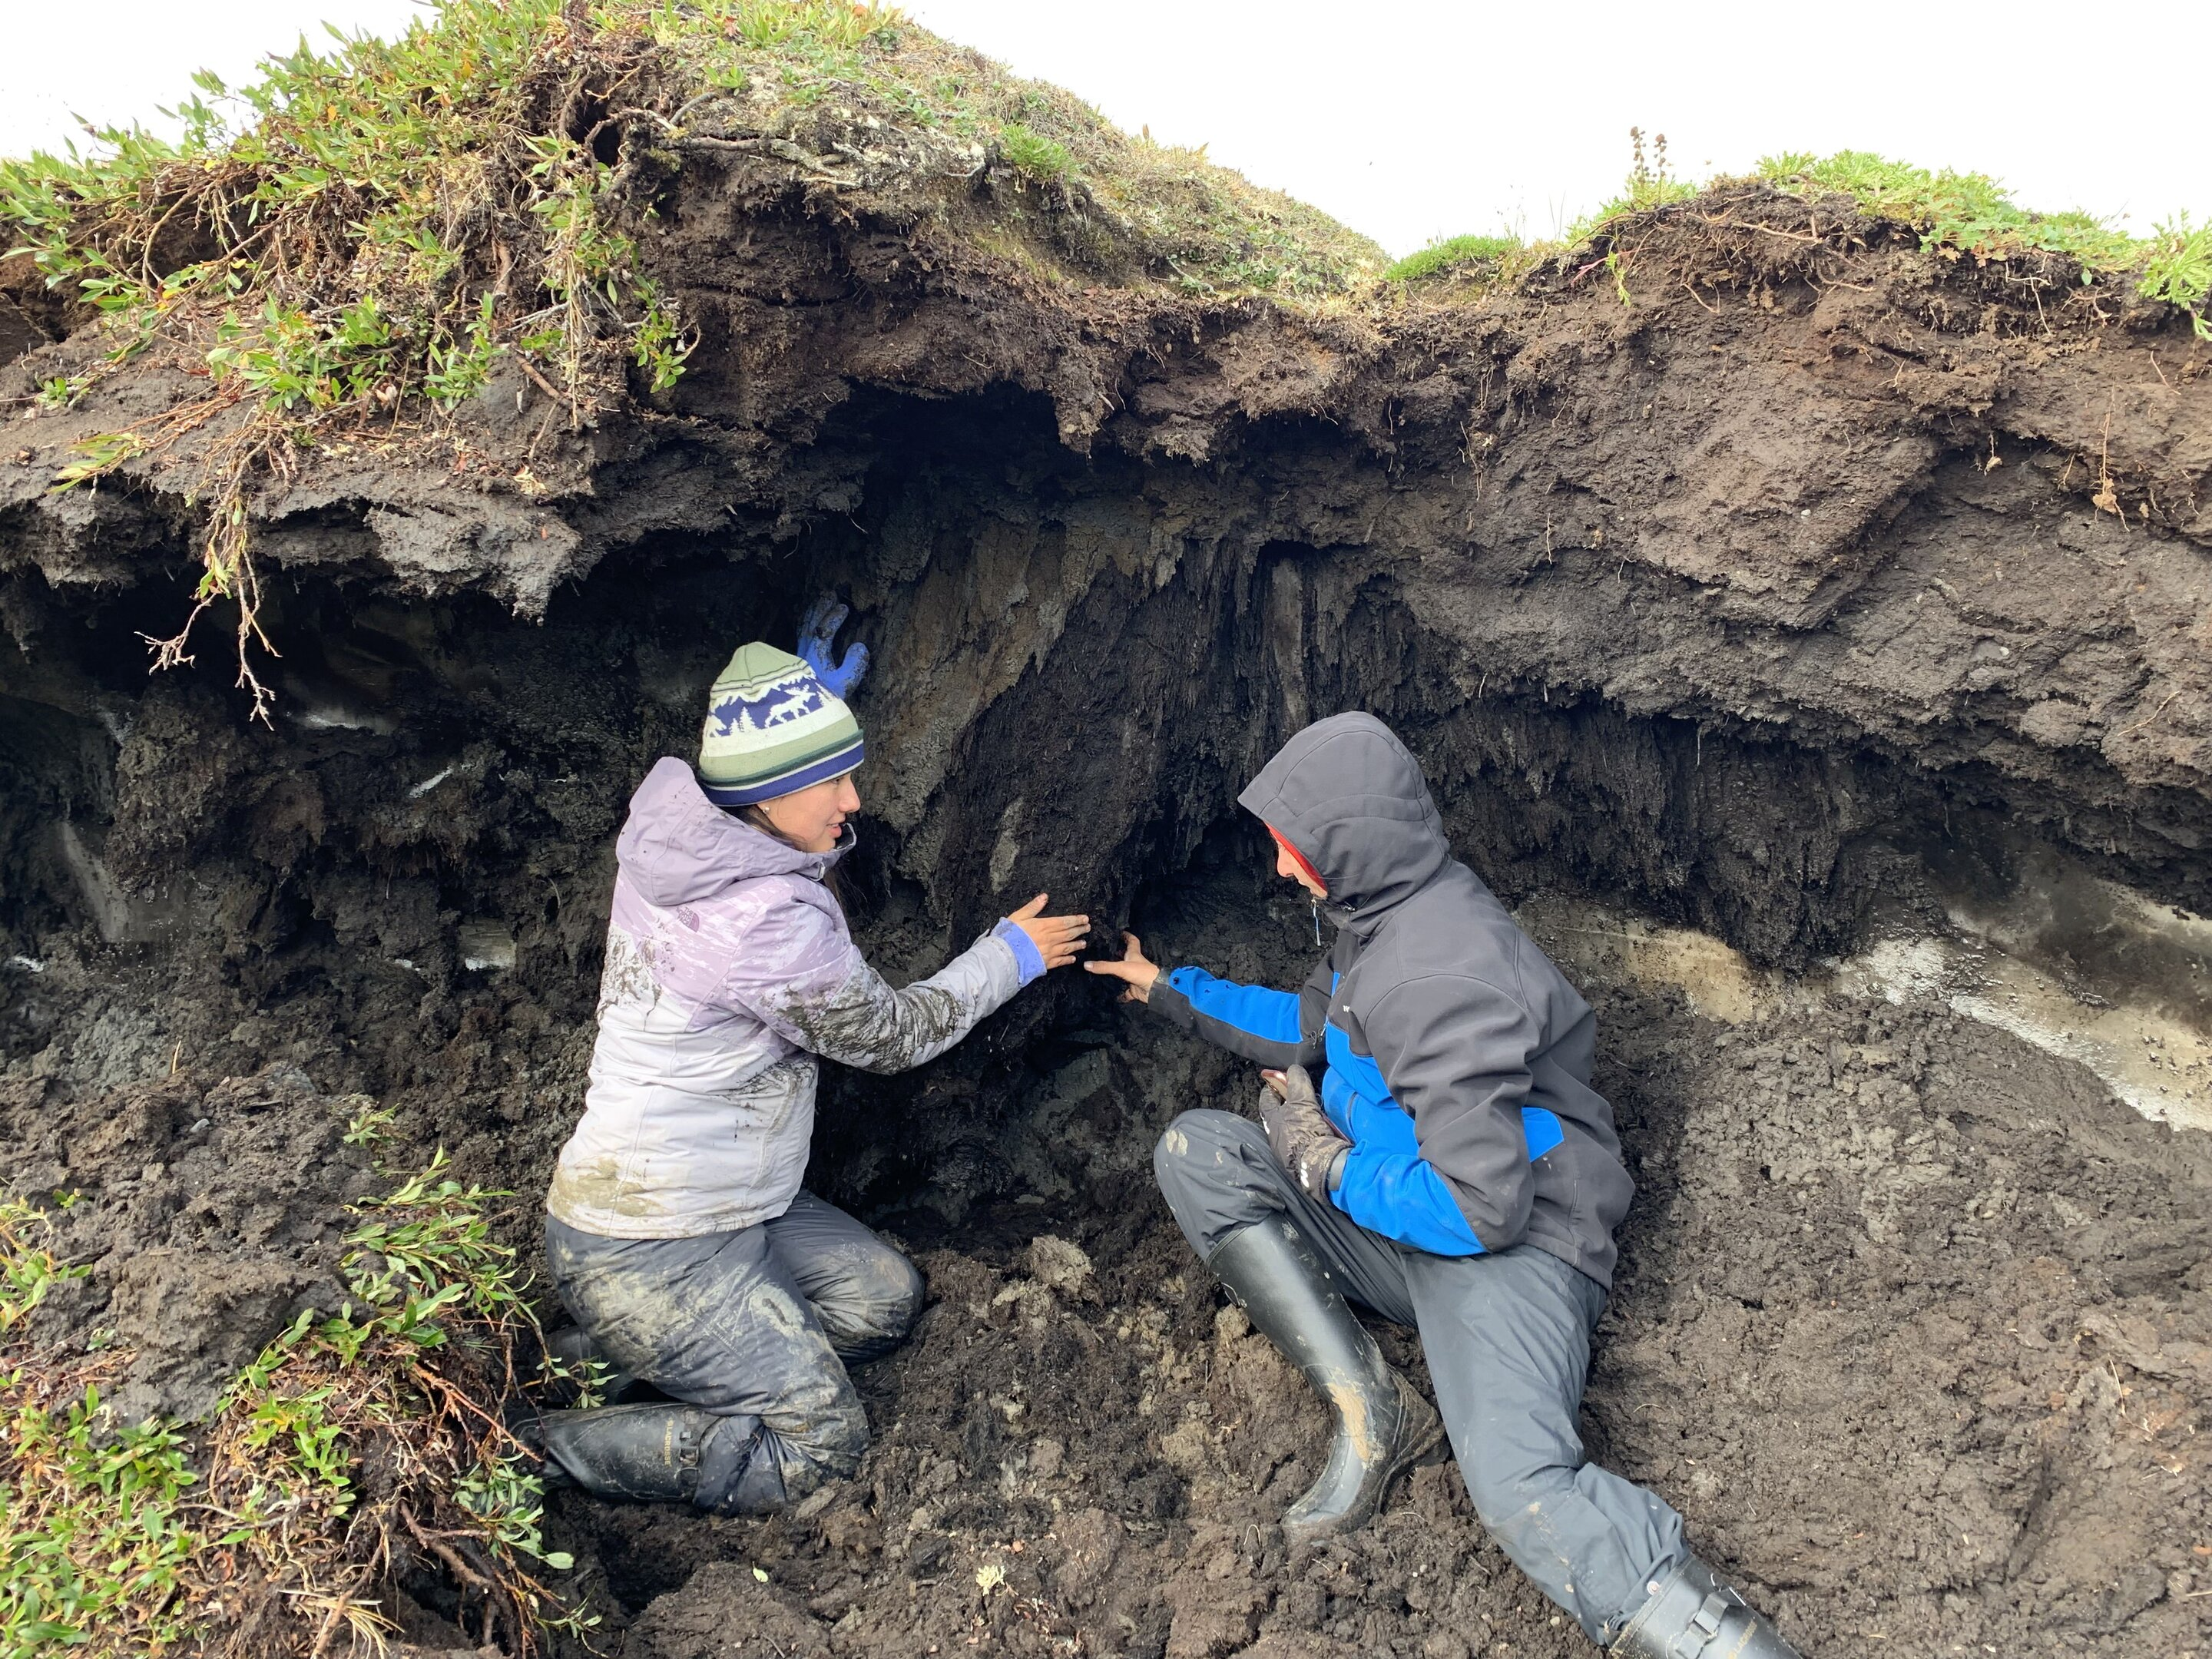 Coastal permafrost more susceptible to climate change than previously thought - Phys.org